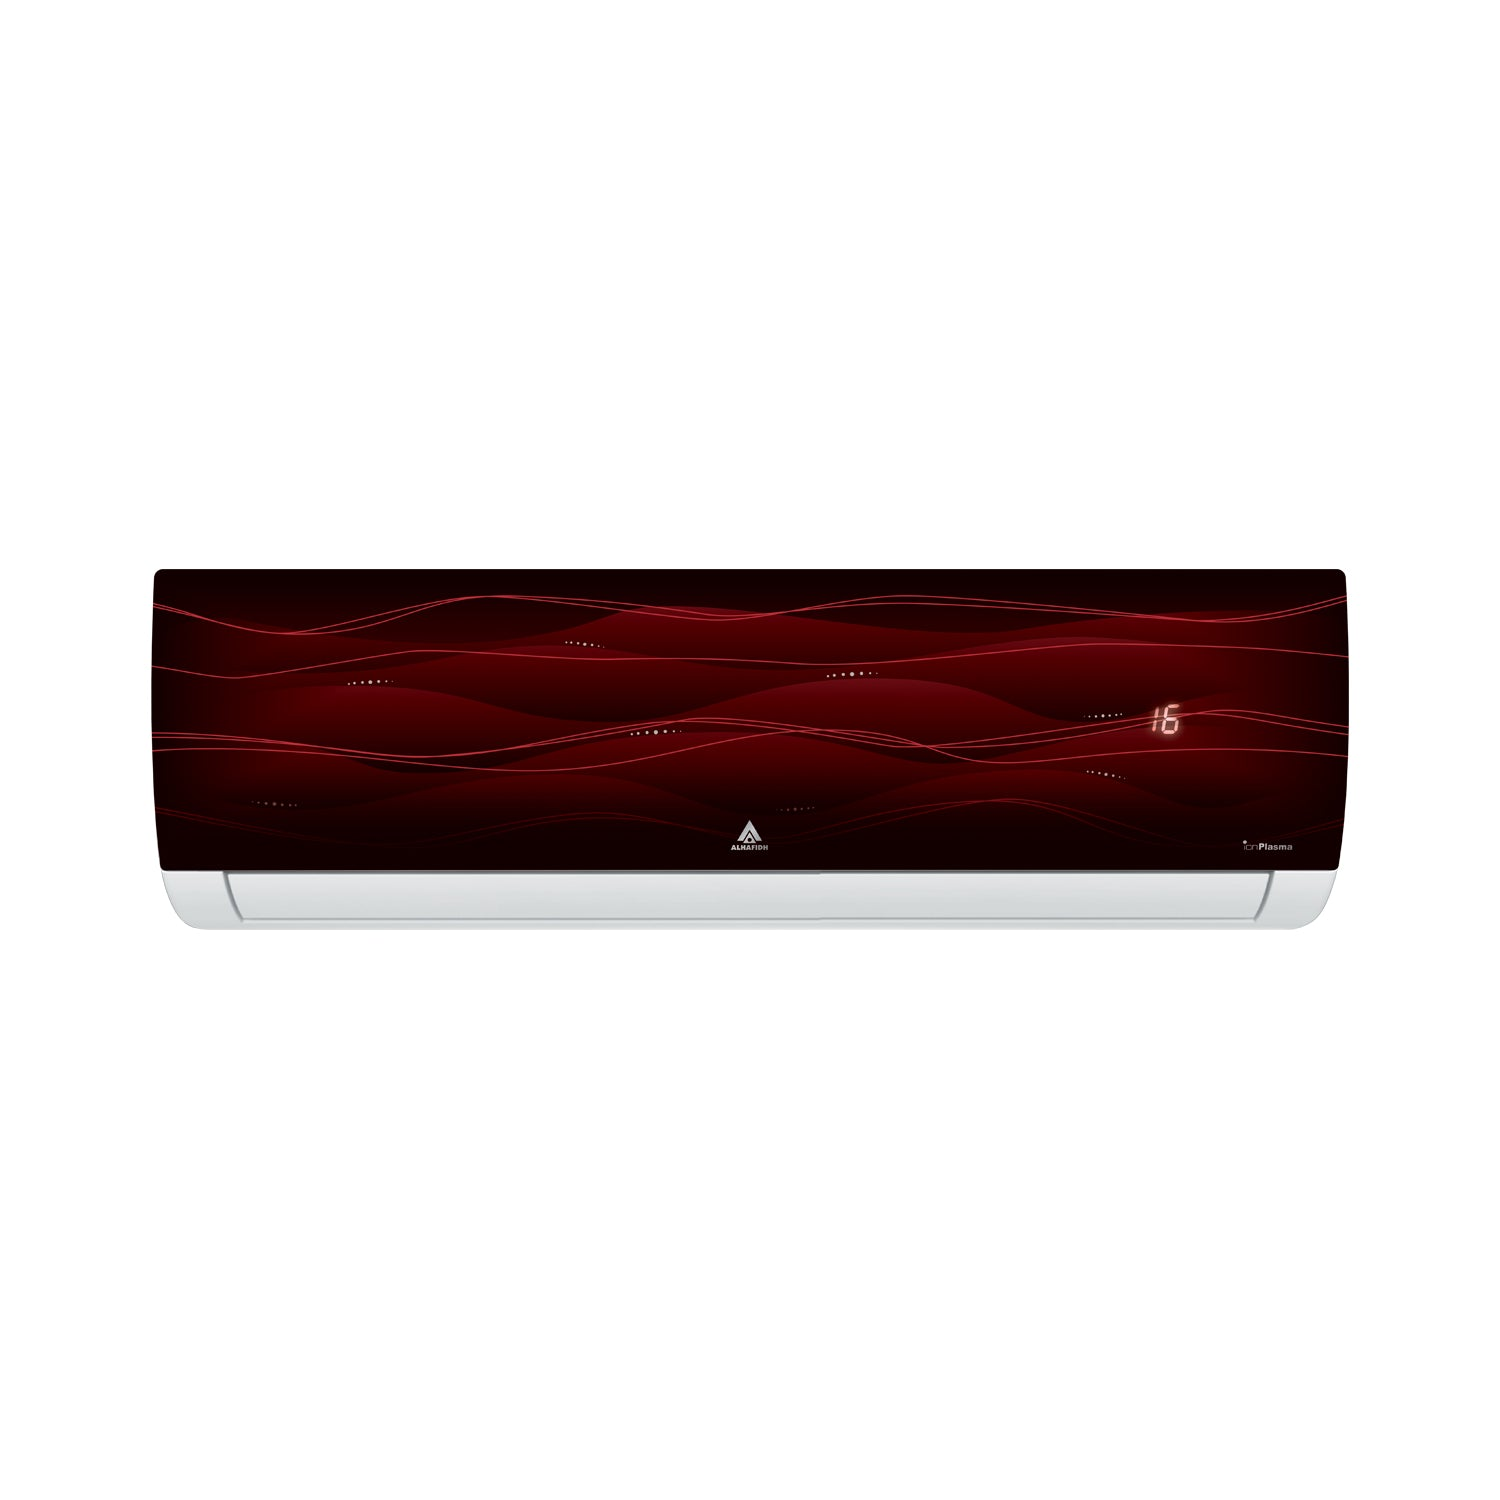 1.5 Ton Wall-Mounted Split AC ON/OFF R410